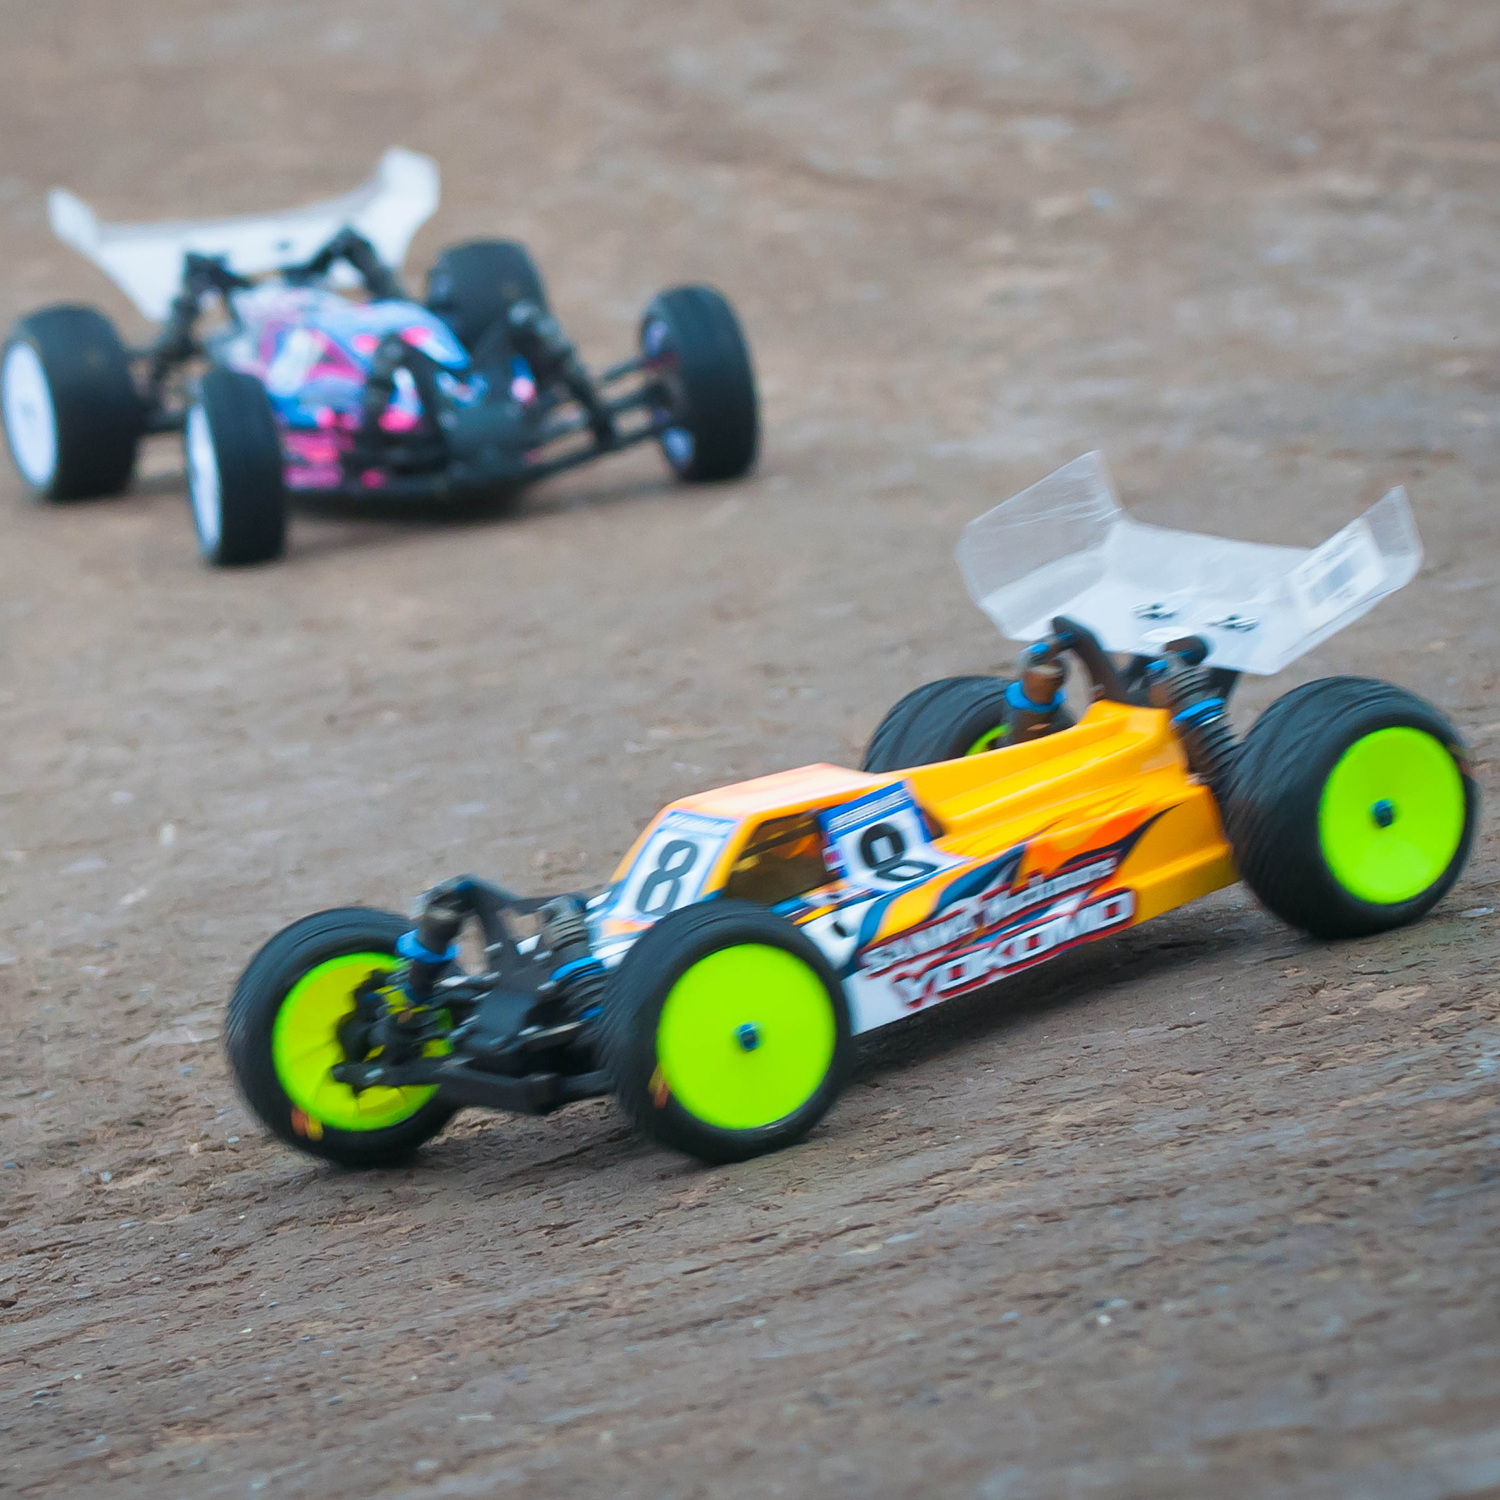 Yokomo's Naoto Matsukura Wins A2 to Force Final Round at 4WD IFMAR Worlds